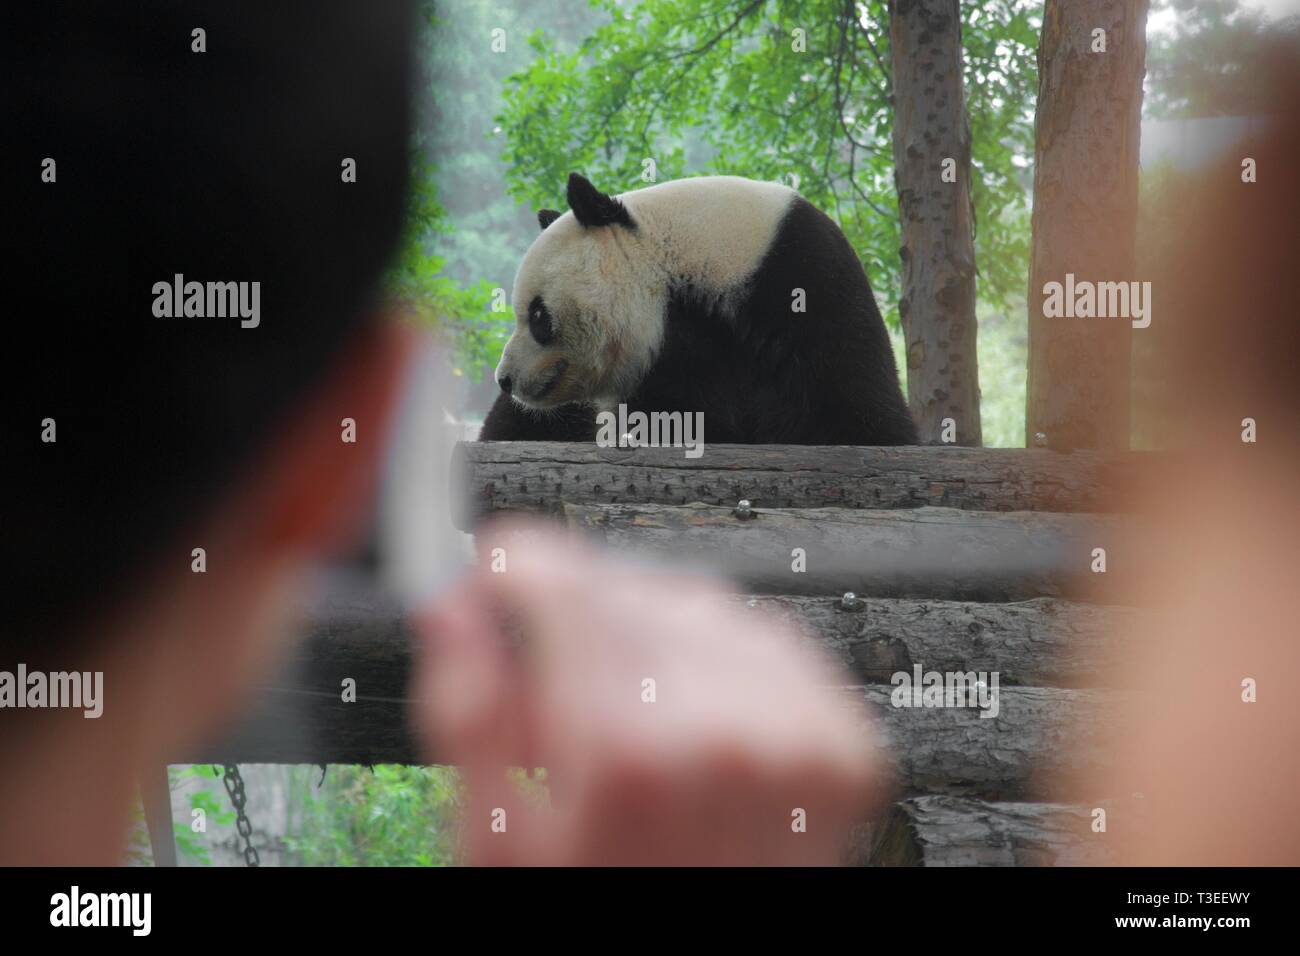 Black and white panda bear walking lazily around on a platform in zoo. Seen between blurred heads of anonymous people spectating - Stock Image